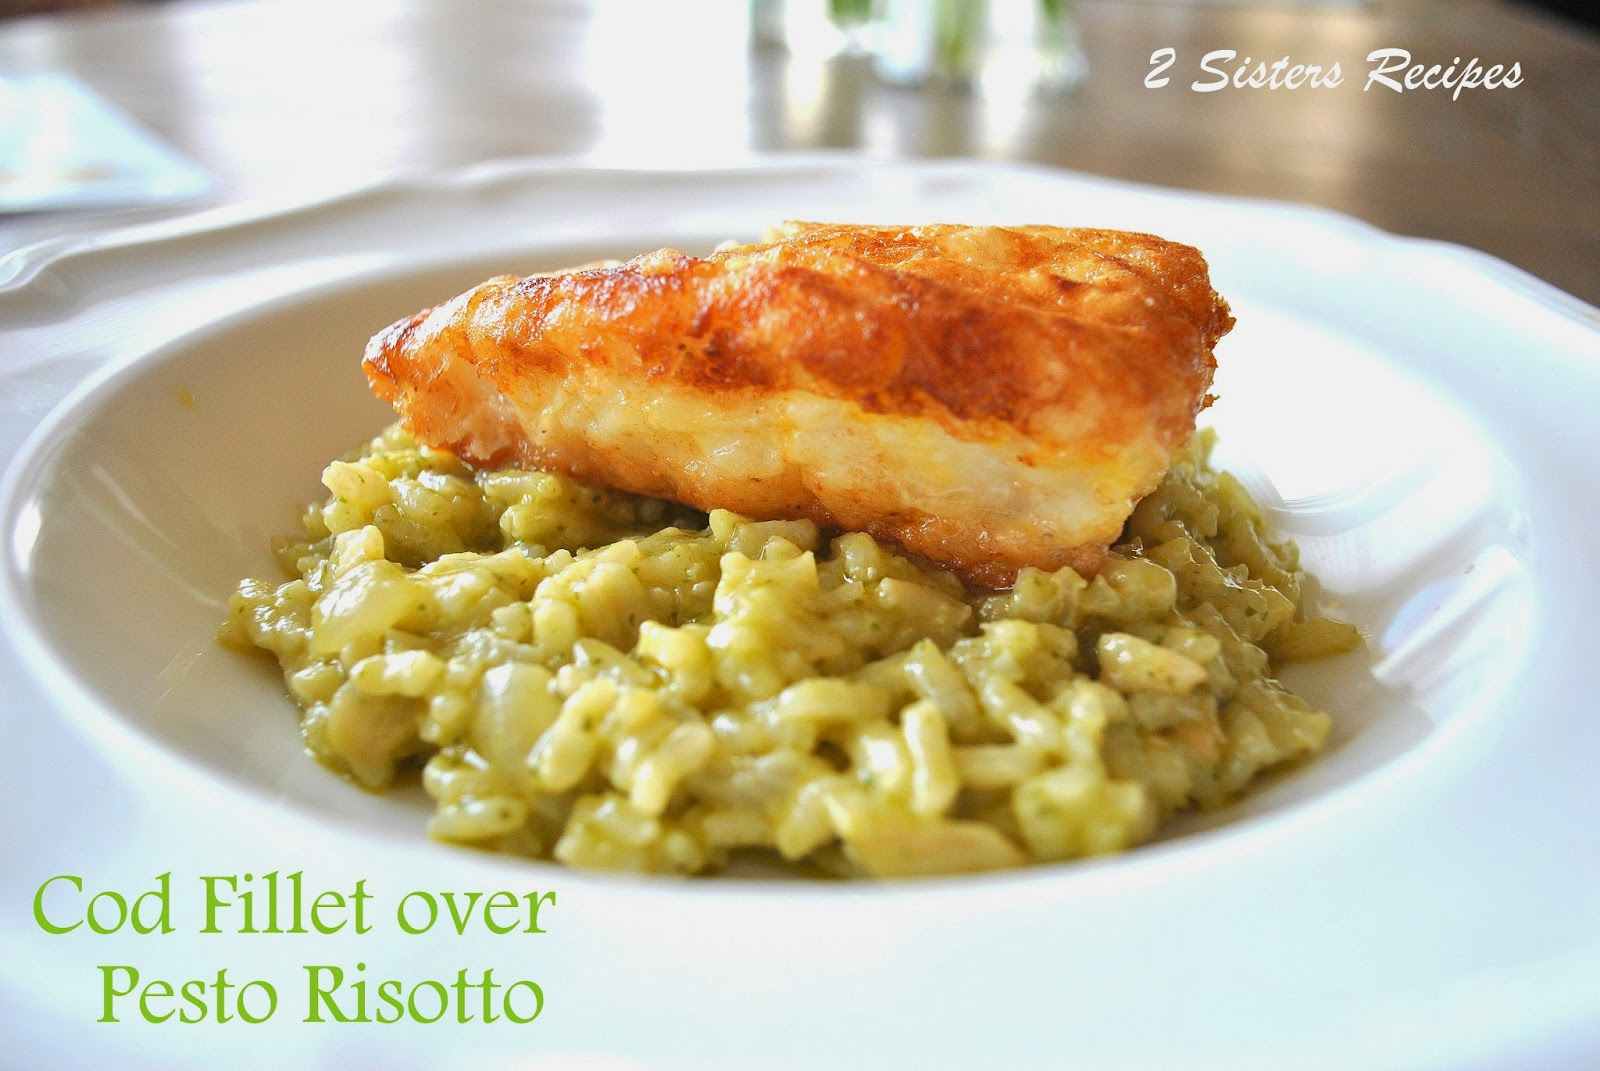 Cod Fillet over Pesto Risotto - 2 Sisters Recipes by Anna ...